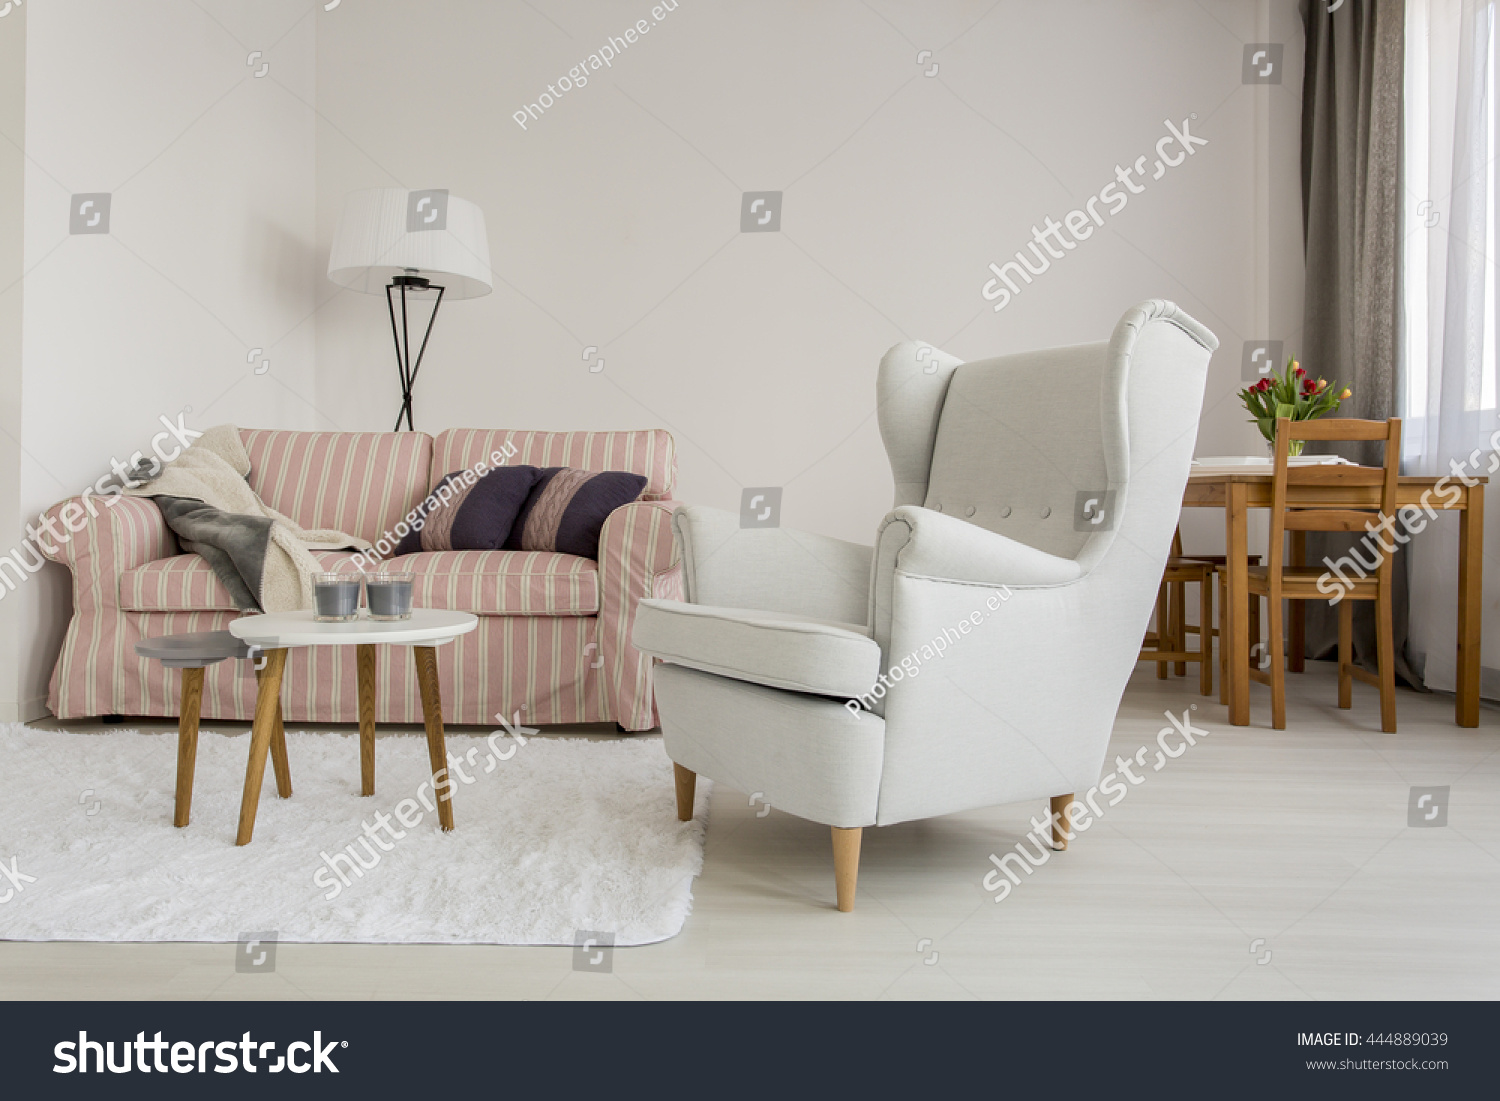 Nice Shot Of A Cozy Living Room With A Big Armchair And A Sofa